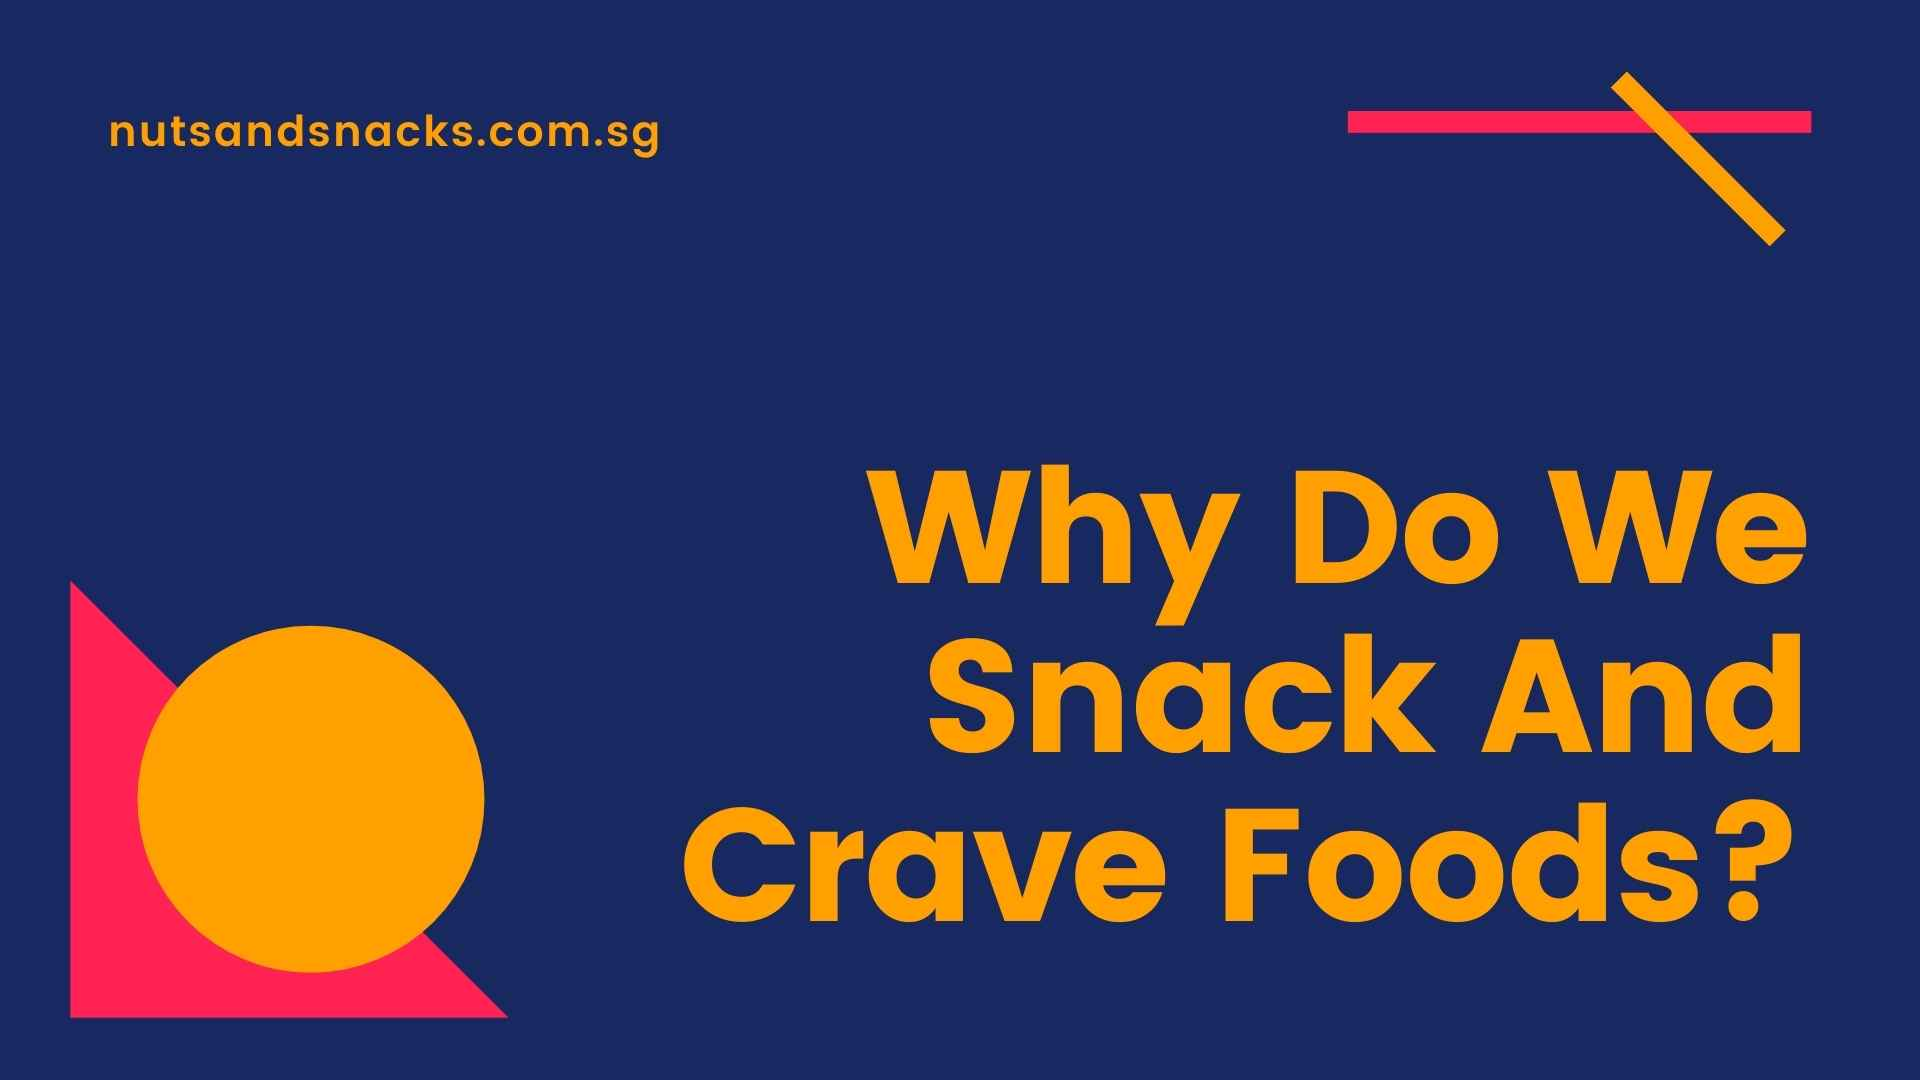 why do we snack and crave foods